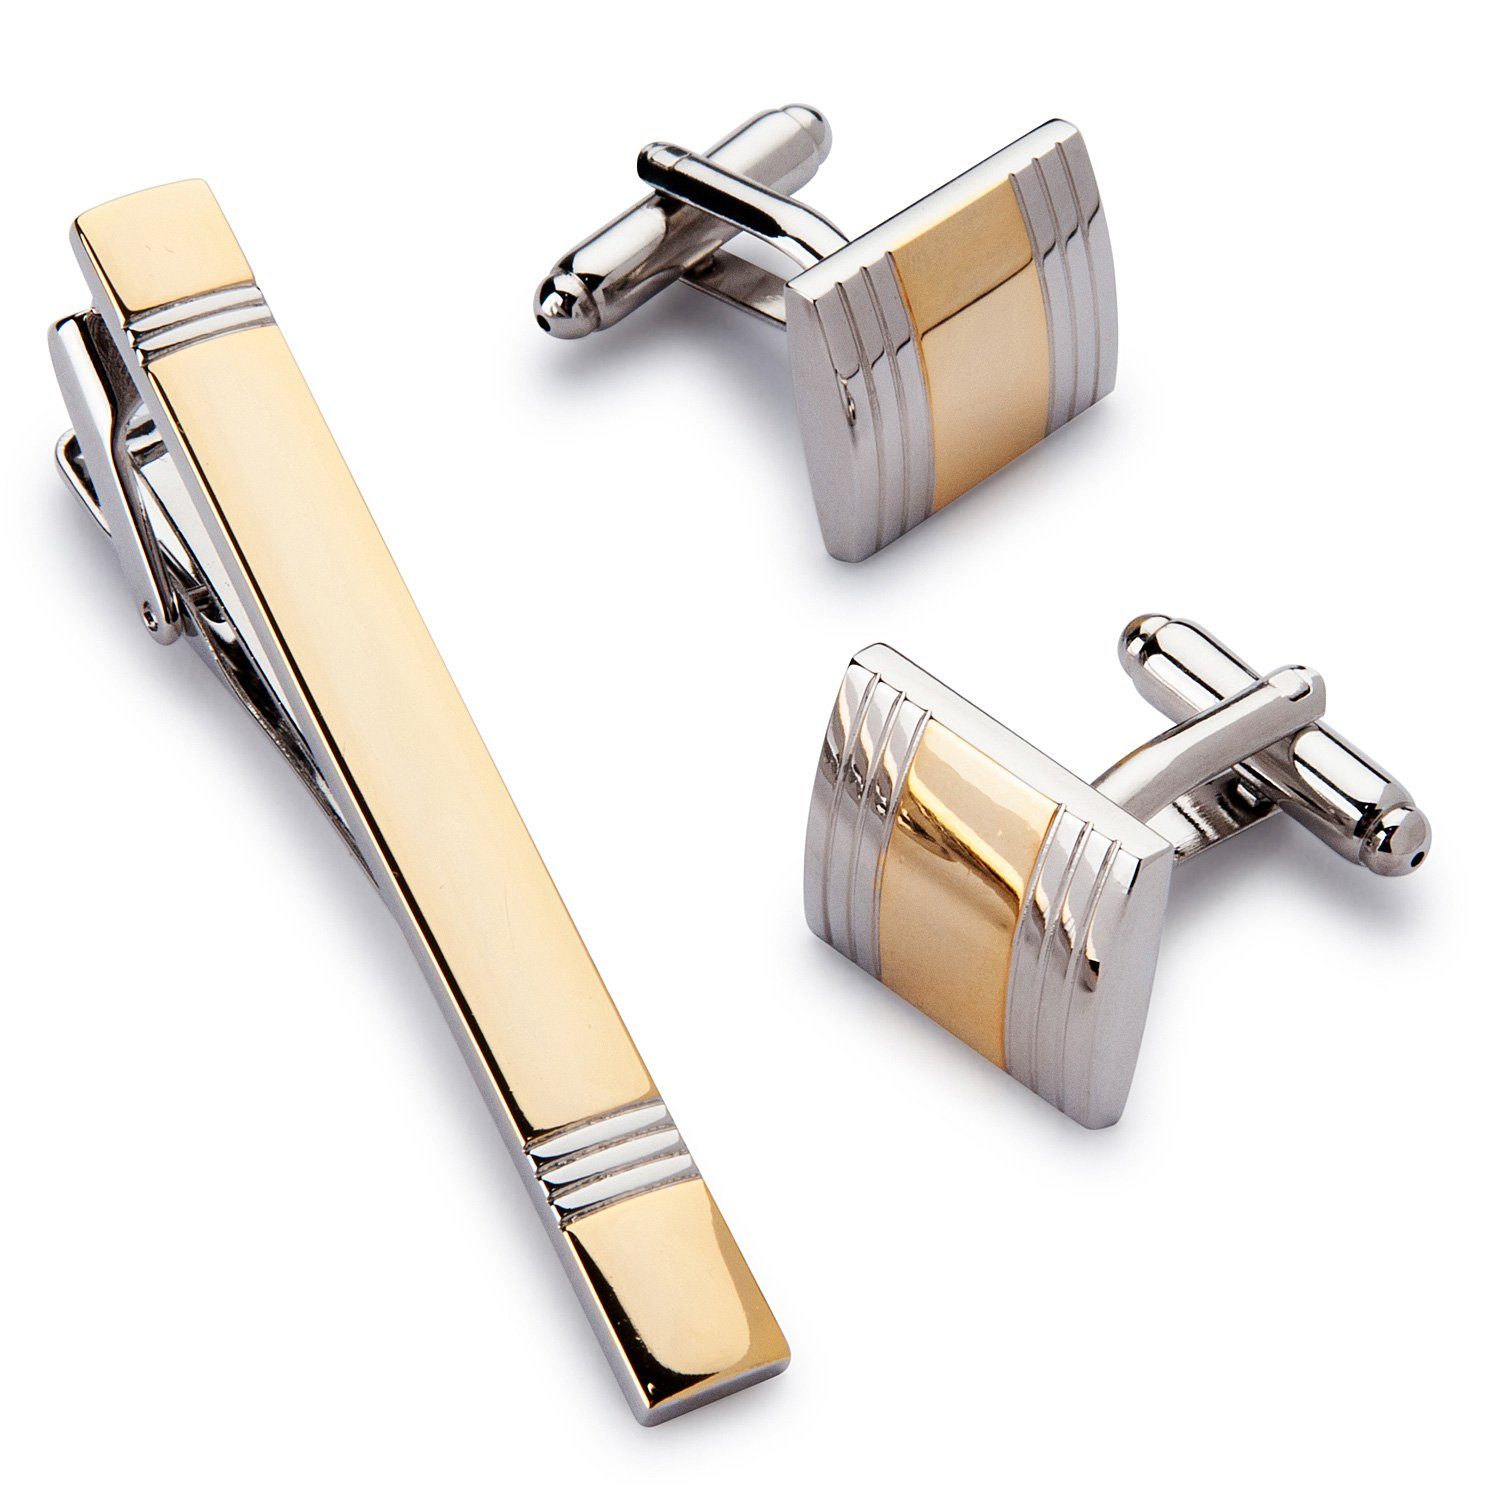 Prime Jewellery Two Tone Golden Cufflink and Tie-Clip Set in Gift Box-Timeless Design-Classic and Fashionable Gift